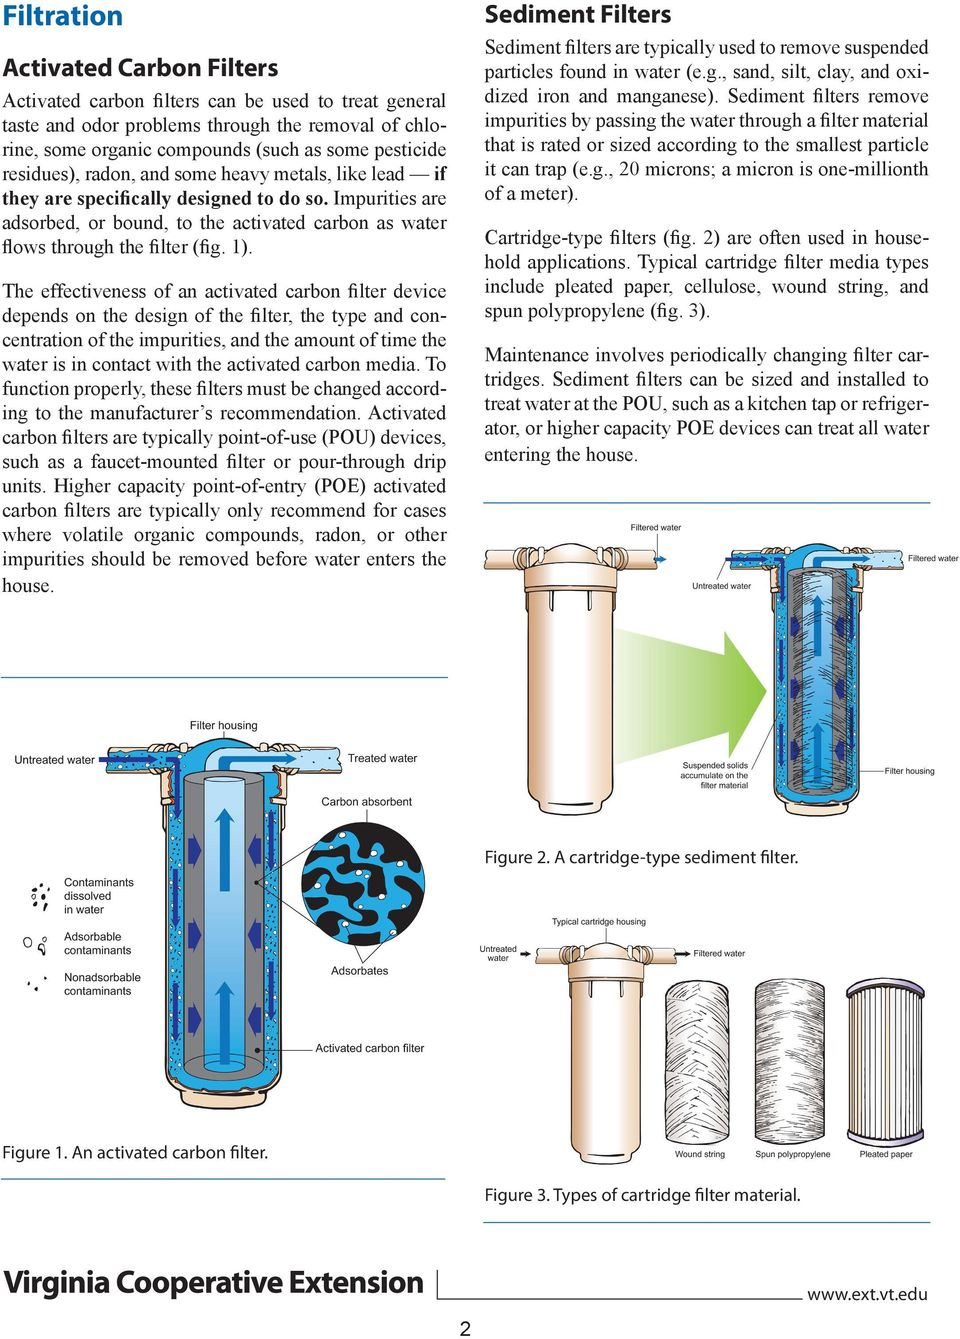 The effectiveness of an activated carbon filter device depends on the design of the filter, the type and concentration of the impurities, and the amount of time the water is in contact with the